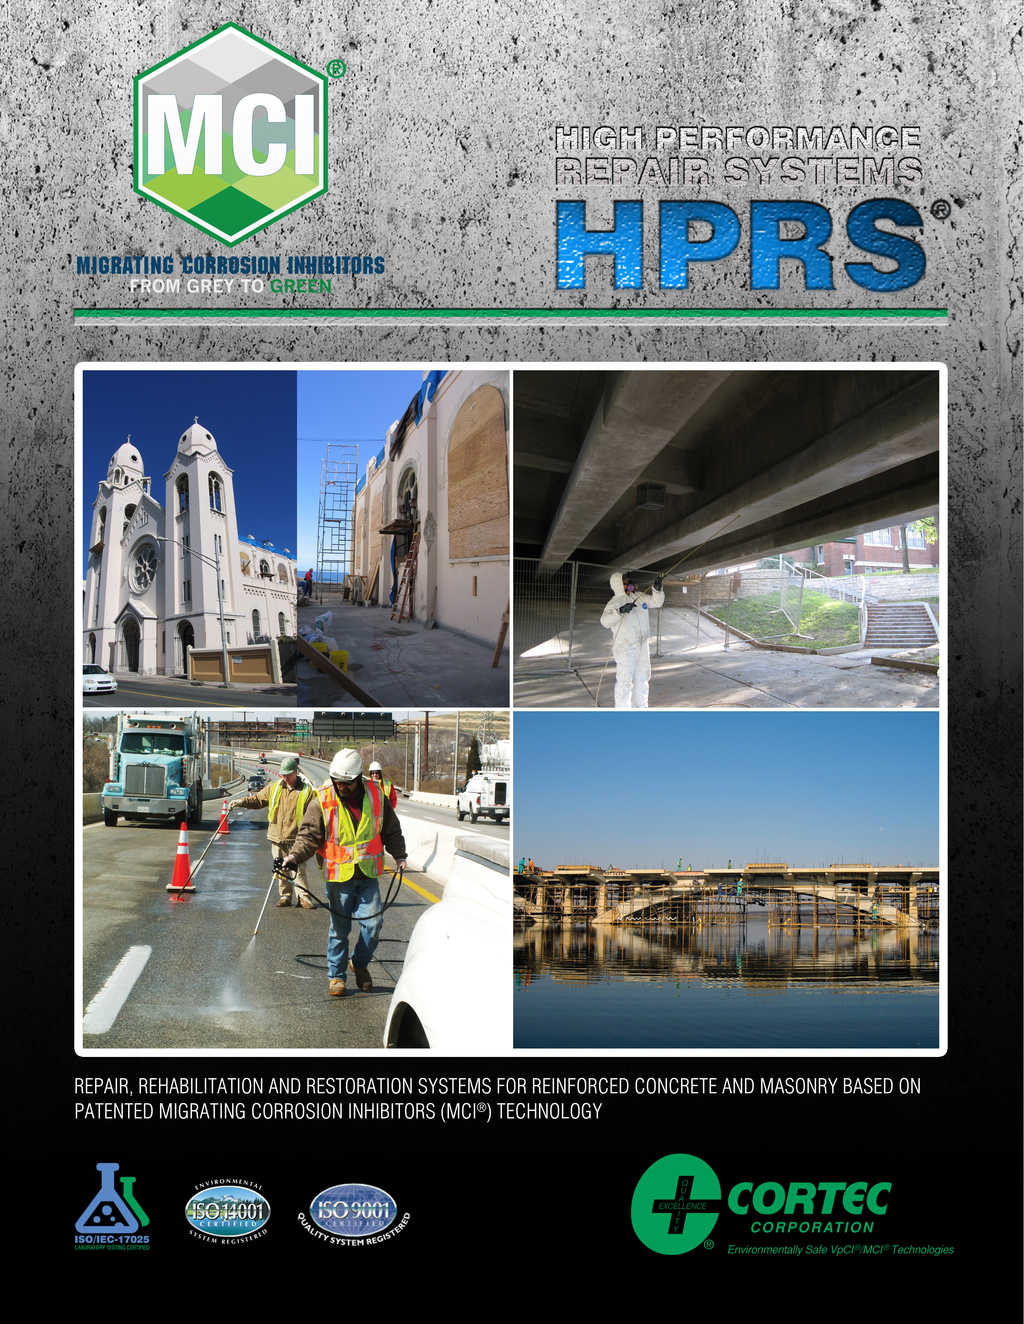 High Performance Repair Systems brochure showing mci products